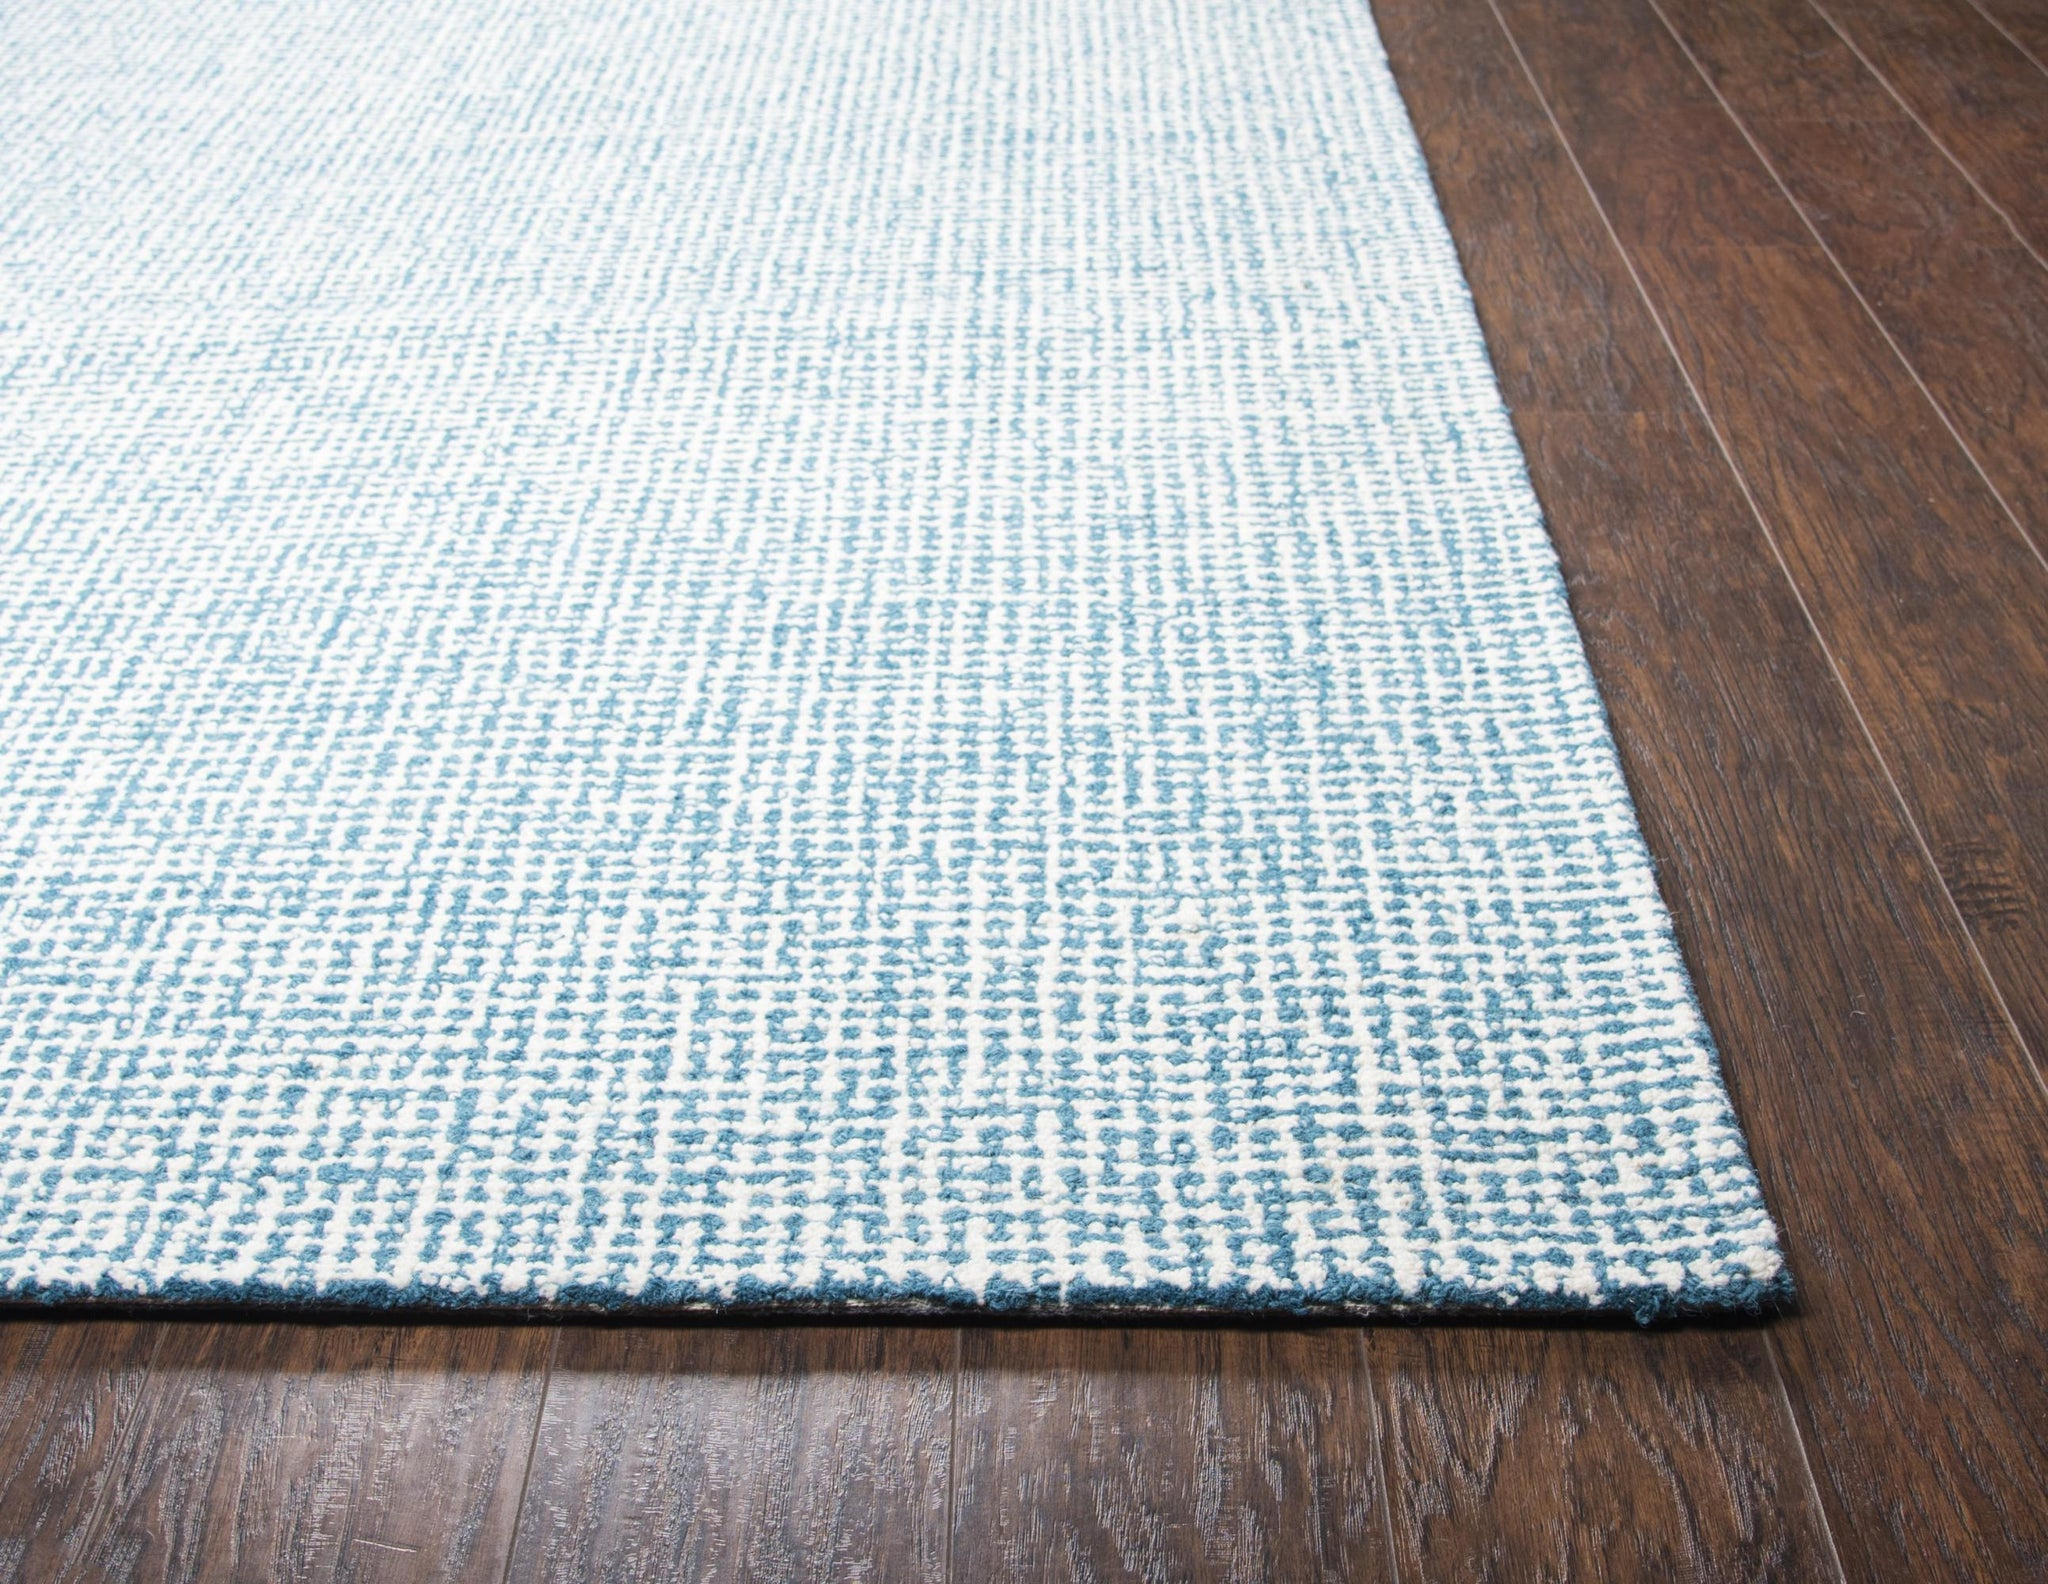 Rizzy Home Area Rugs Brindleton BR651A Teal Area Rug in 39 Unique Shapes and Sizes